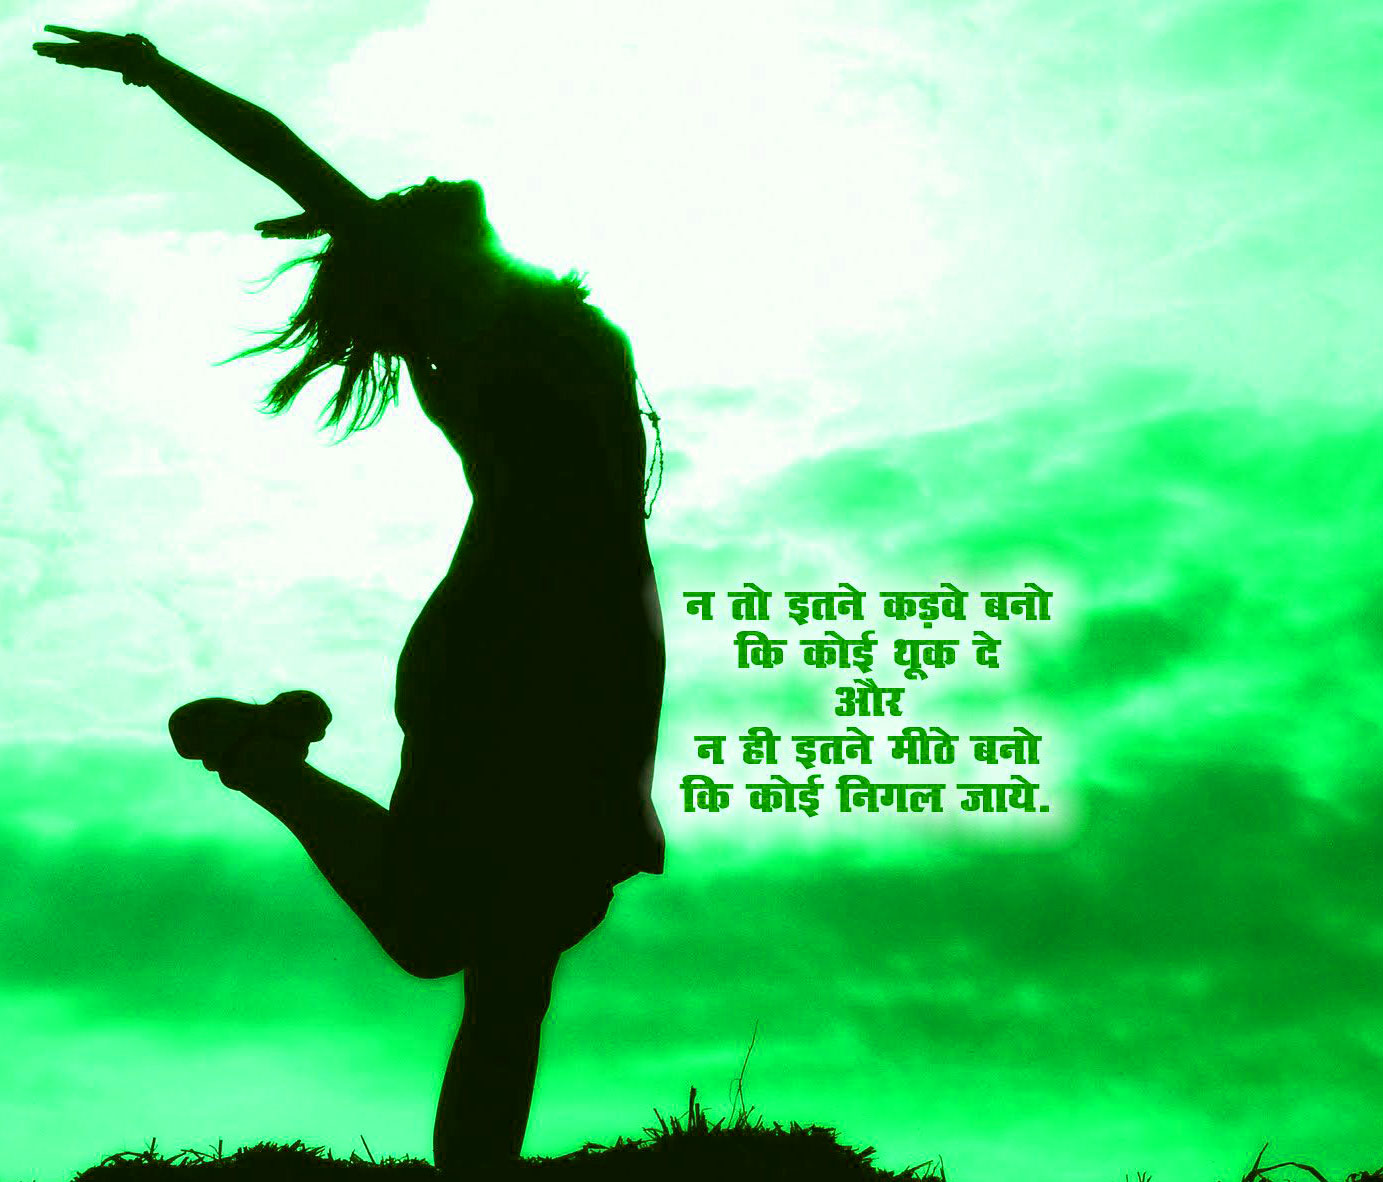 SAD LOVE ROMANTIC LIFE BEST HINDI SHAYARI IMAGES WALLPAPER PICS DOWNLOAD & SHARE